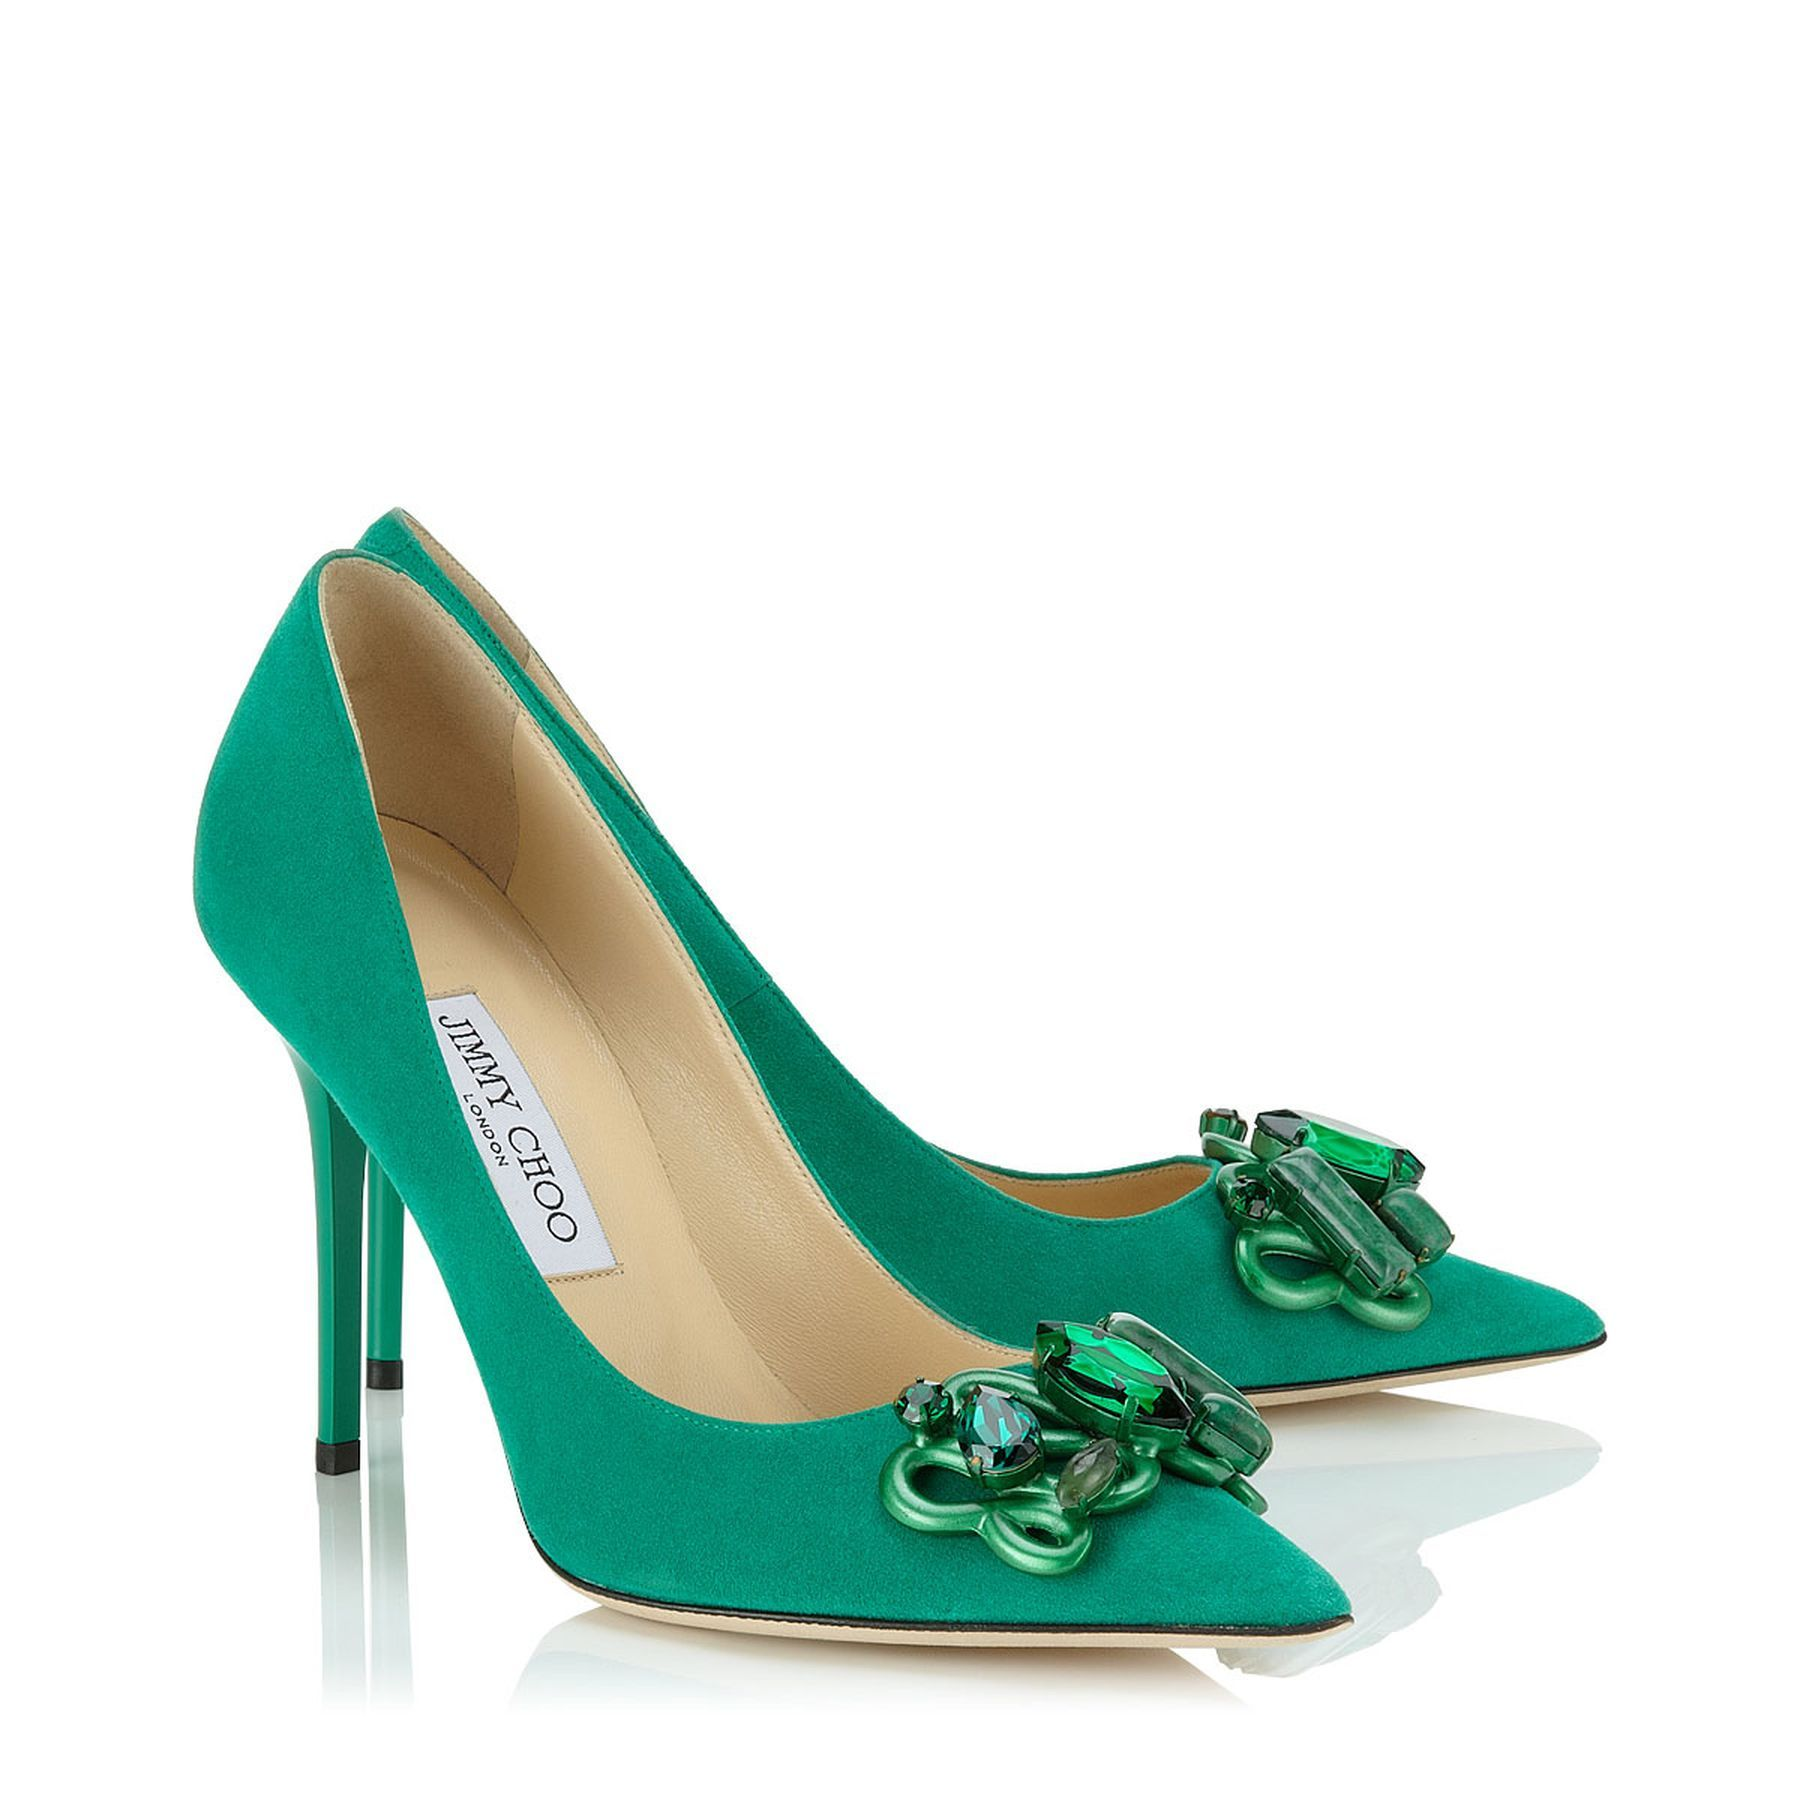 9168b13df Emerald Suede Pump with Semi-Precious Stone Details | Abel | Cruise 15  Vices| JIMMY CHOO Shoes